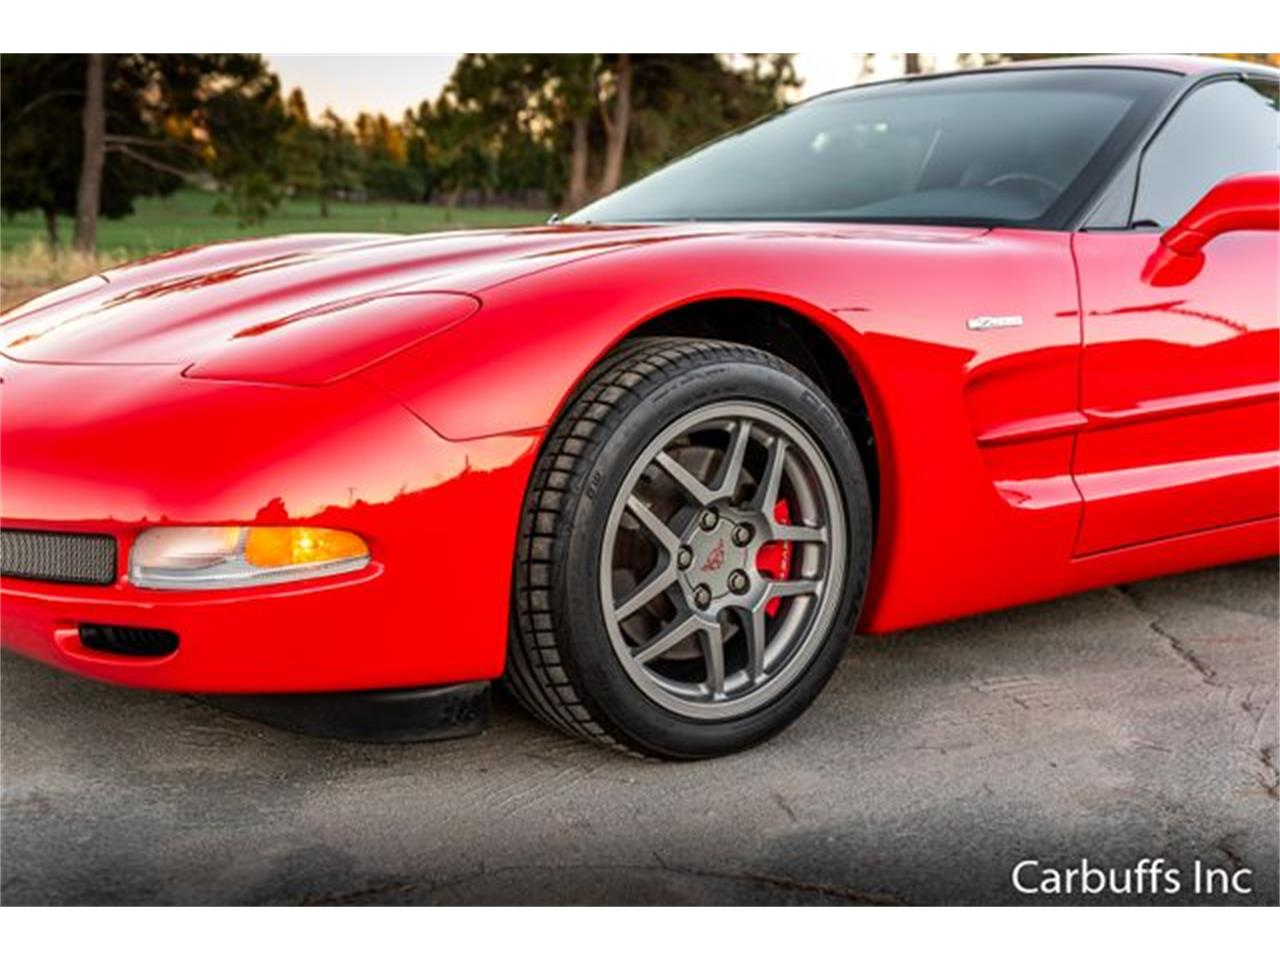 2001 Chevrolet Corvette for sale in Concord, CA – photo 21